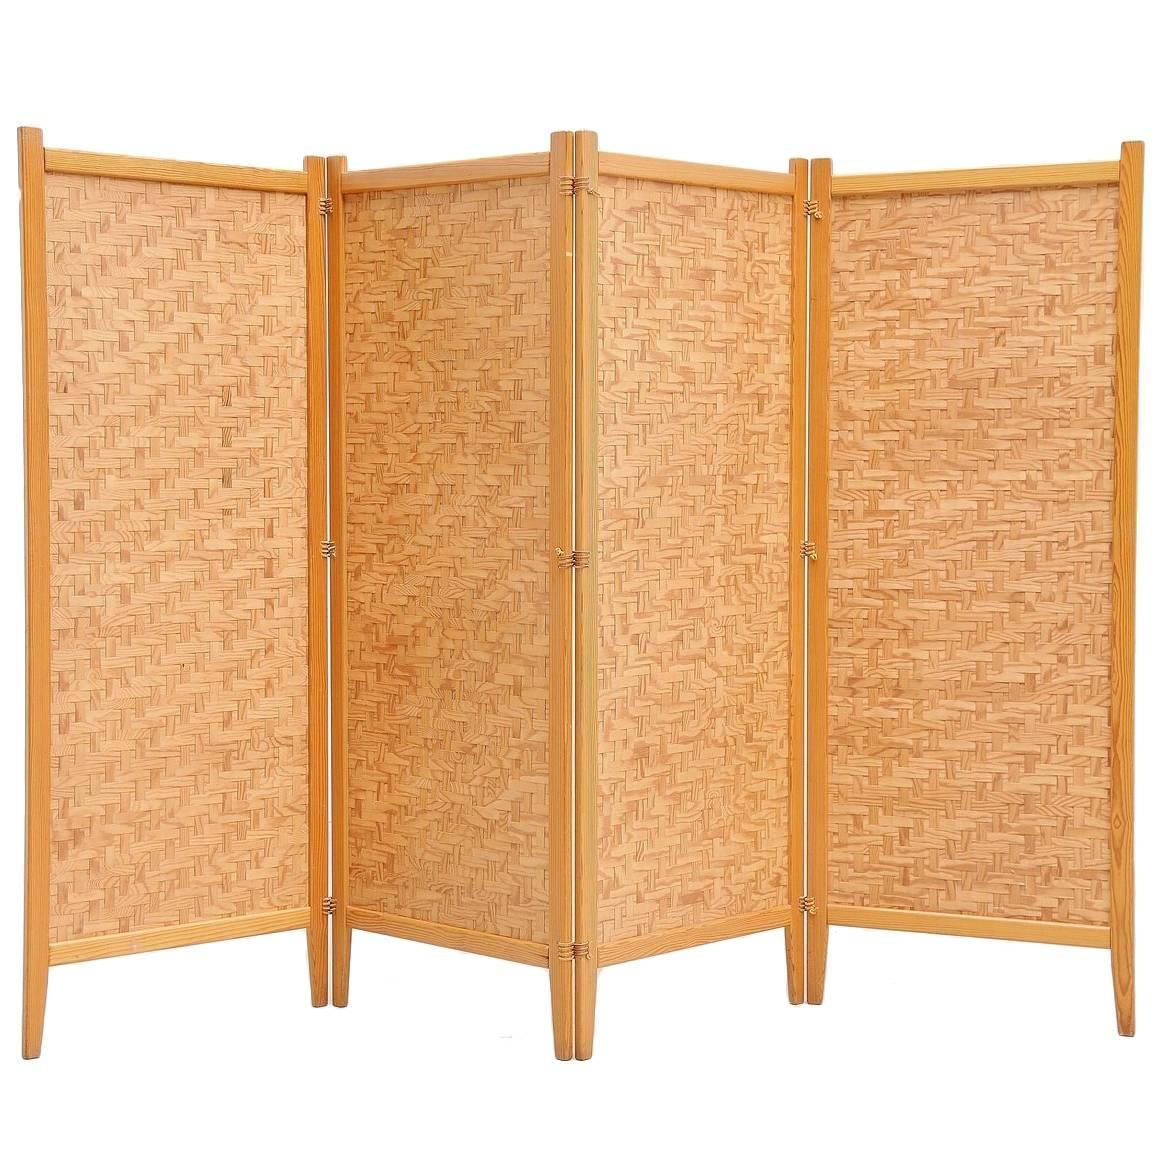 Albert Jansson Folding Screen Room Divider Sweden 1950 For Sale at